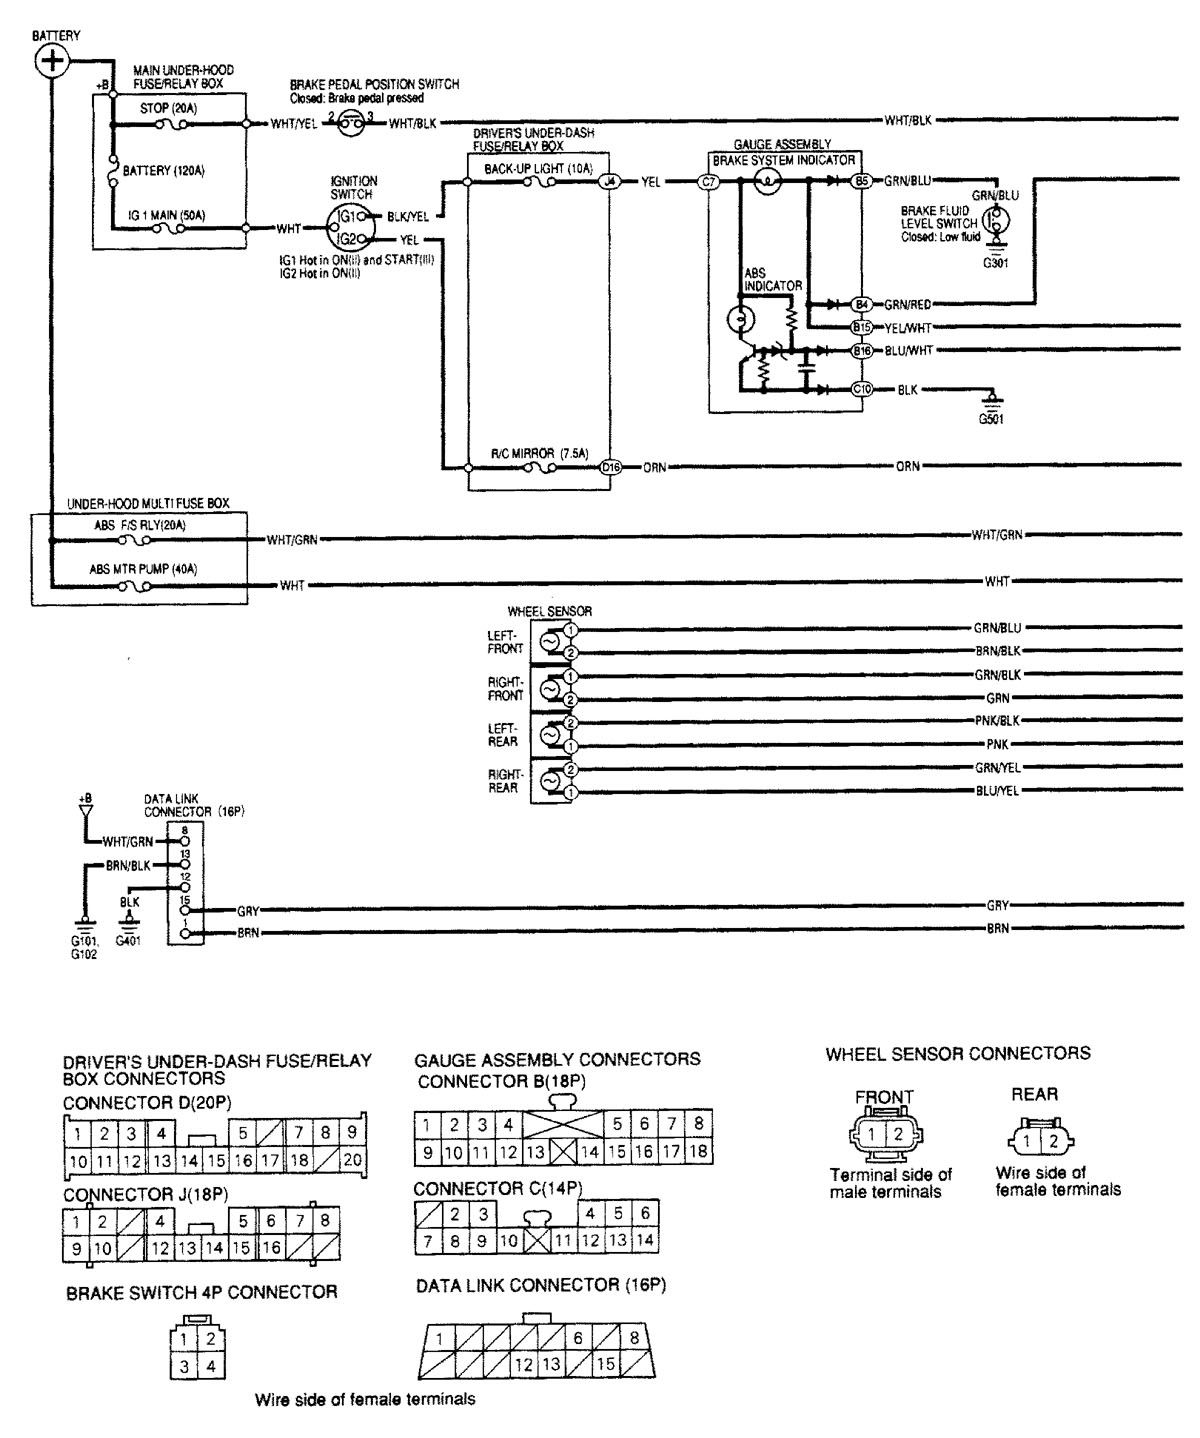 Acura Mdx Wiring Diagram Trusted 1 6 El 2001 Diagrams Brake Controls Carknowledge Ignition